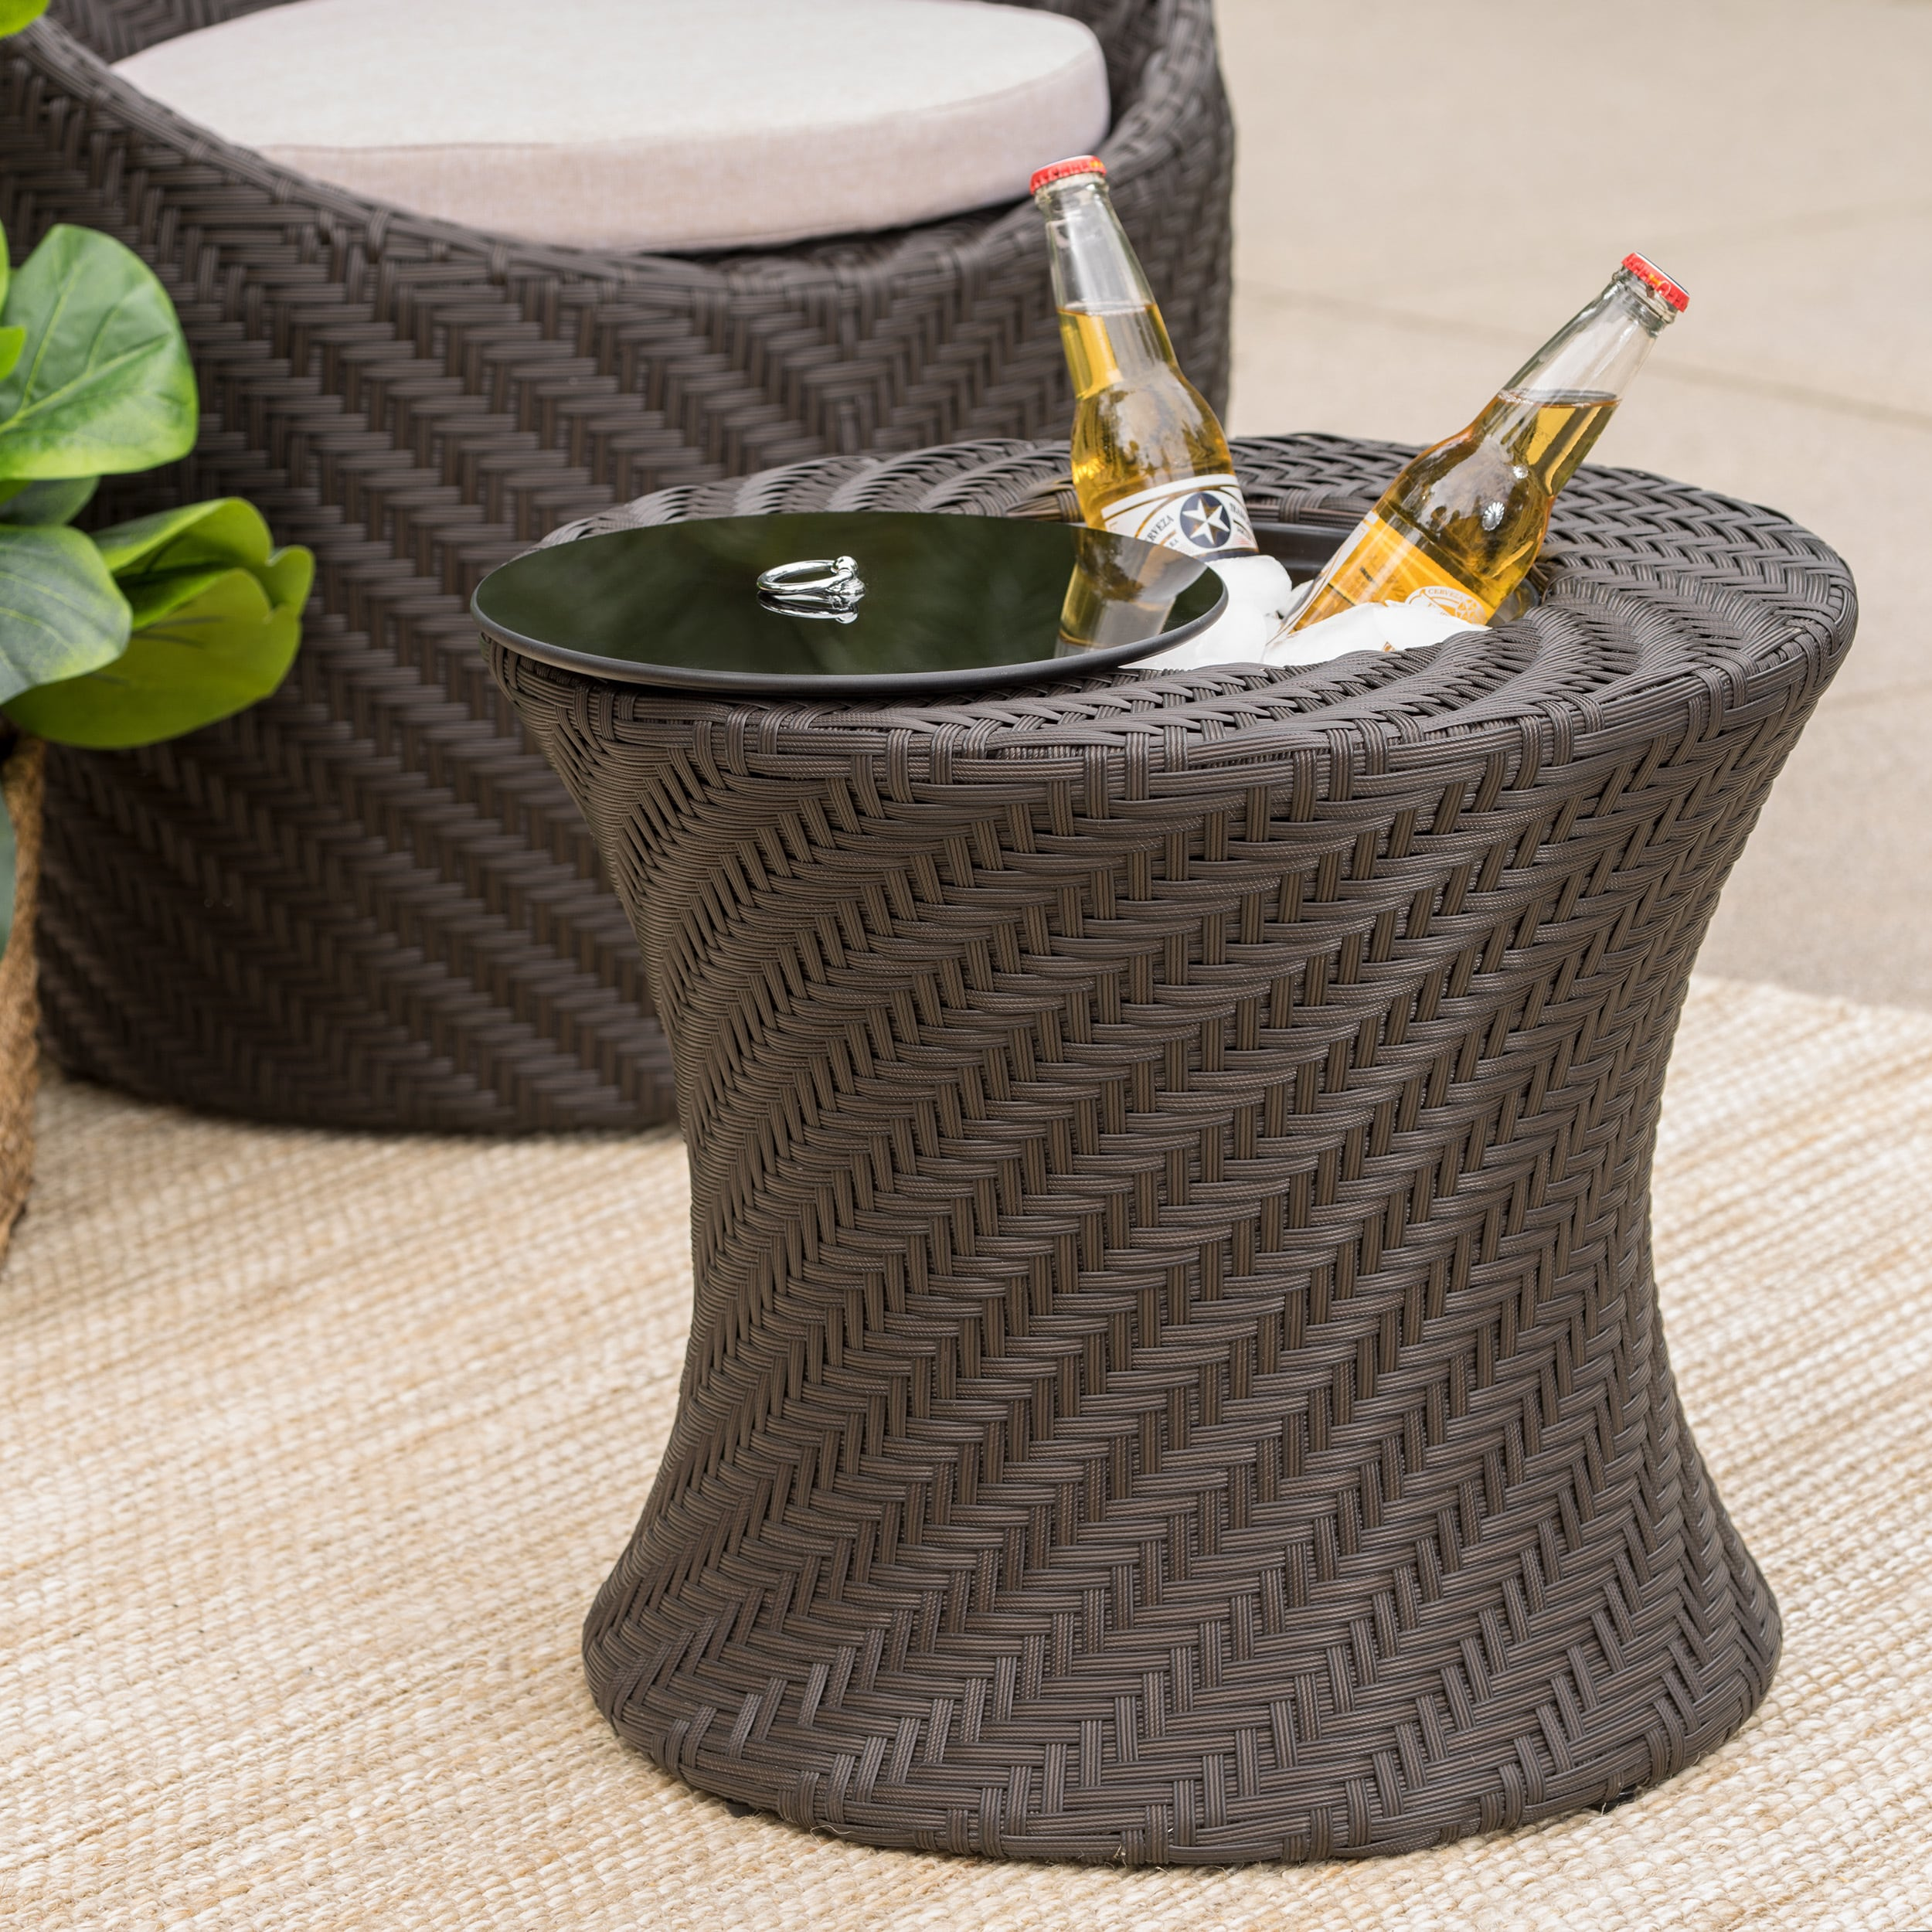 La Jolla Outdoor Wicker Accent Table With Ice Bucket By Christopher Knight Home On Free Shipping Today 14491515